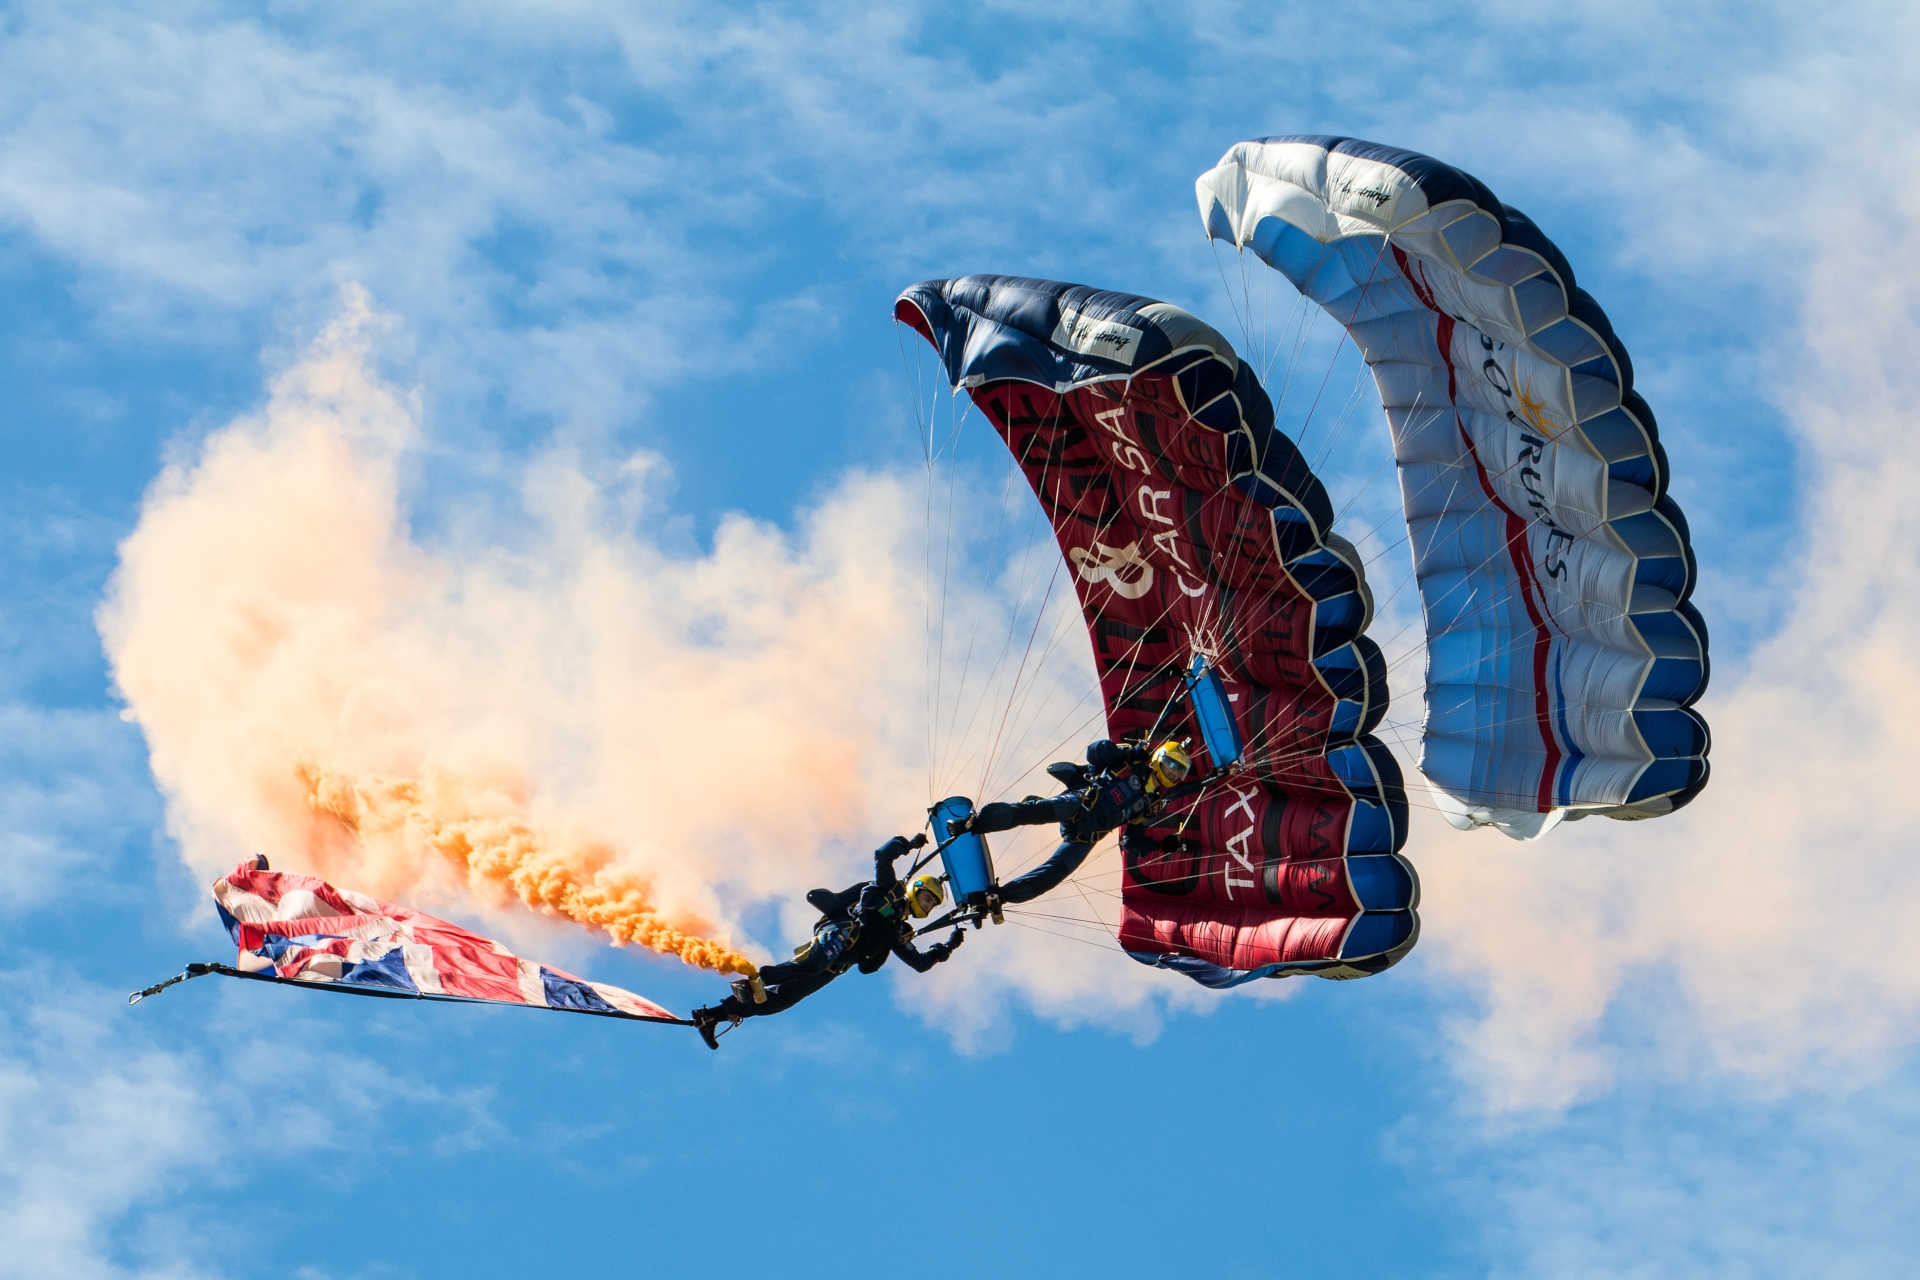 Two soldiers parachuting with flags and smoke coming off them during their Air festival show